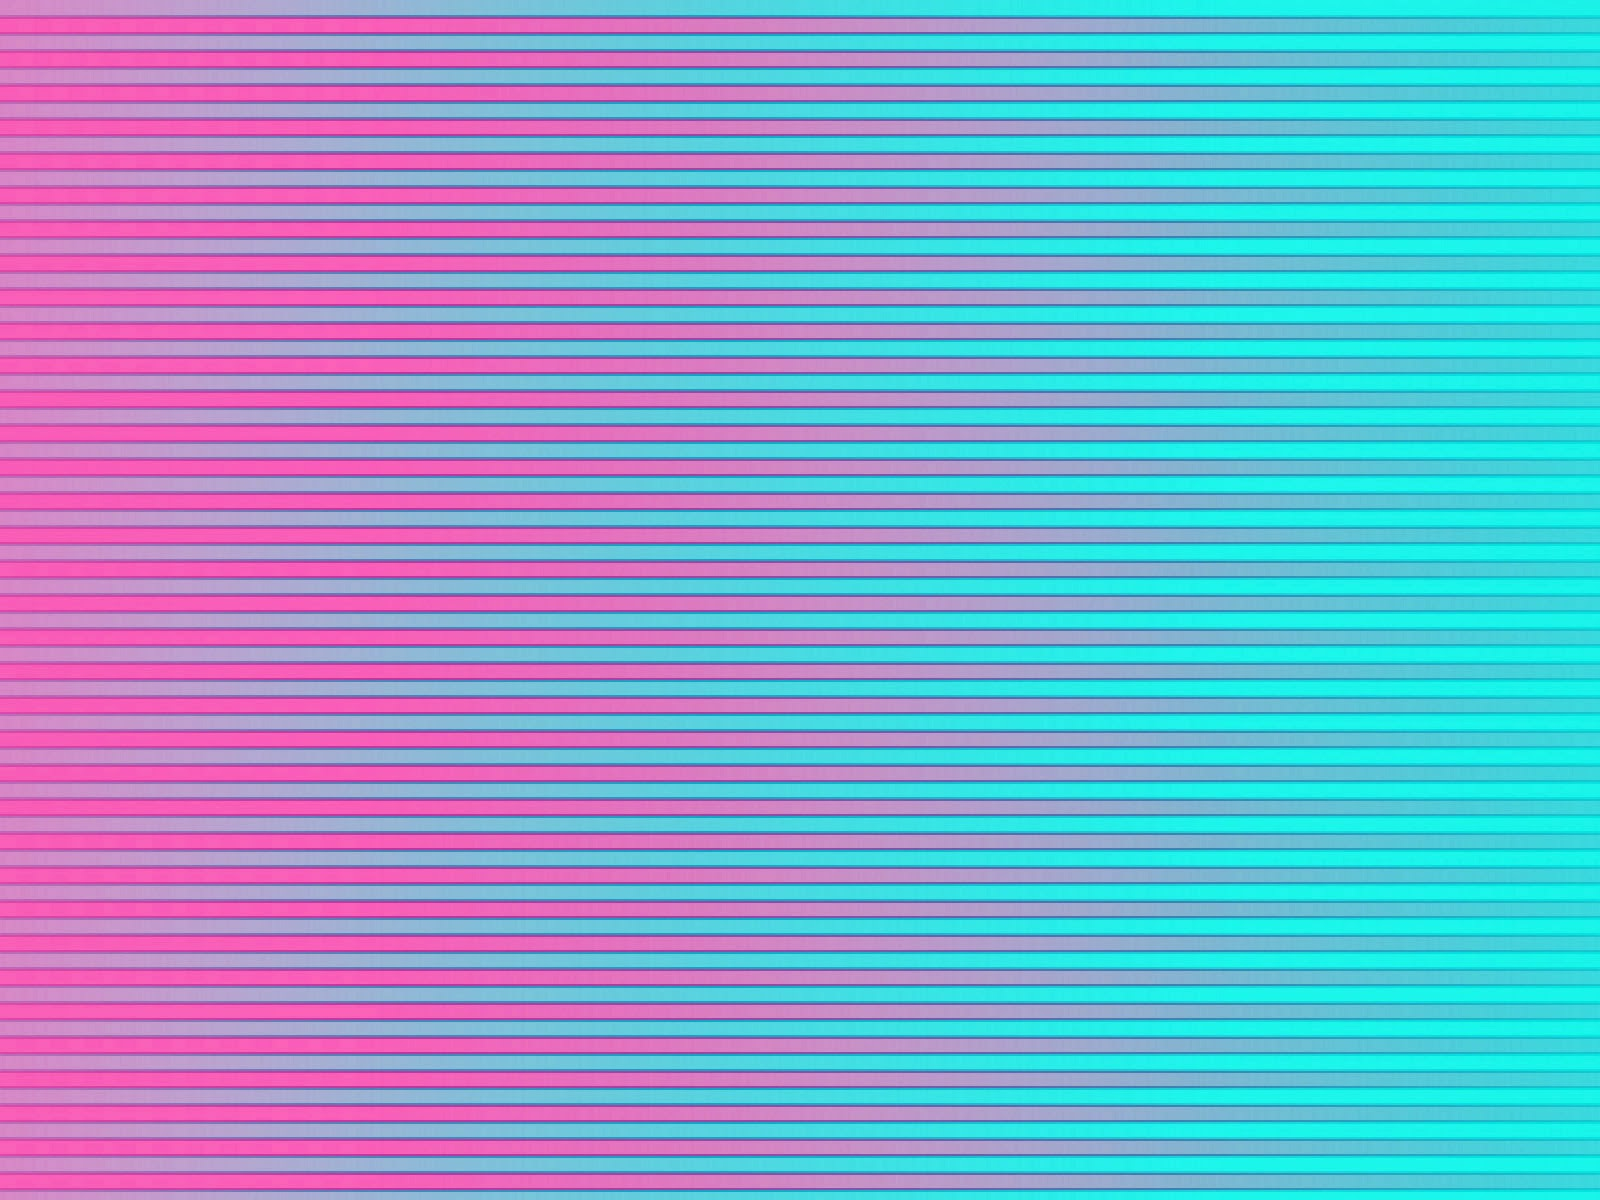 Pink And Blue Striped Wallpaper 2989 Wallpaper: Download Blue And Pink Wallpaper Stripes Gallery